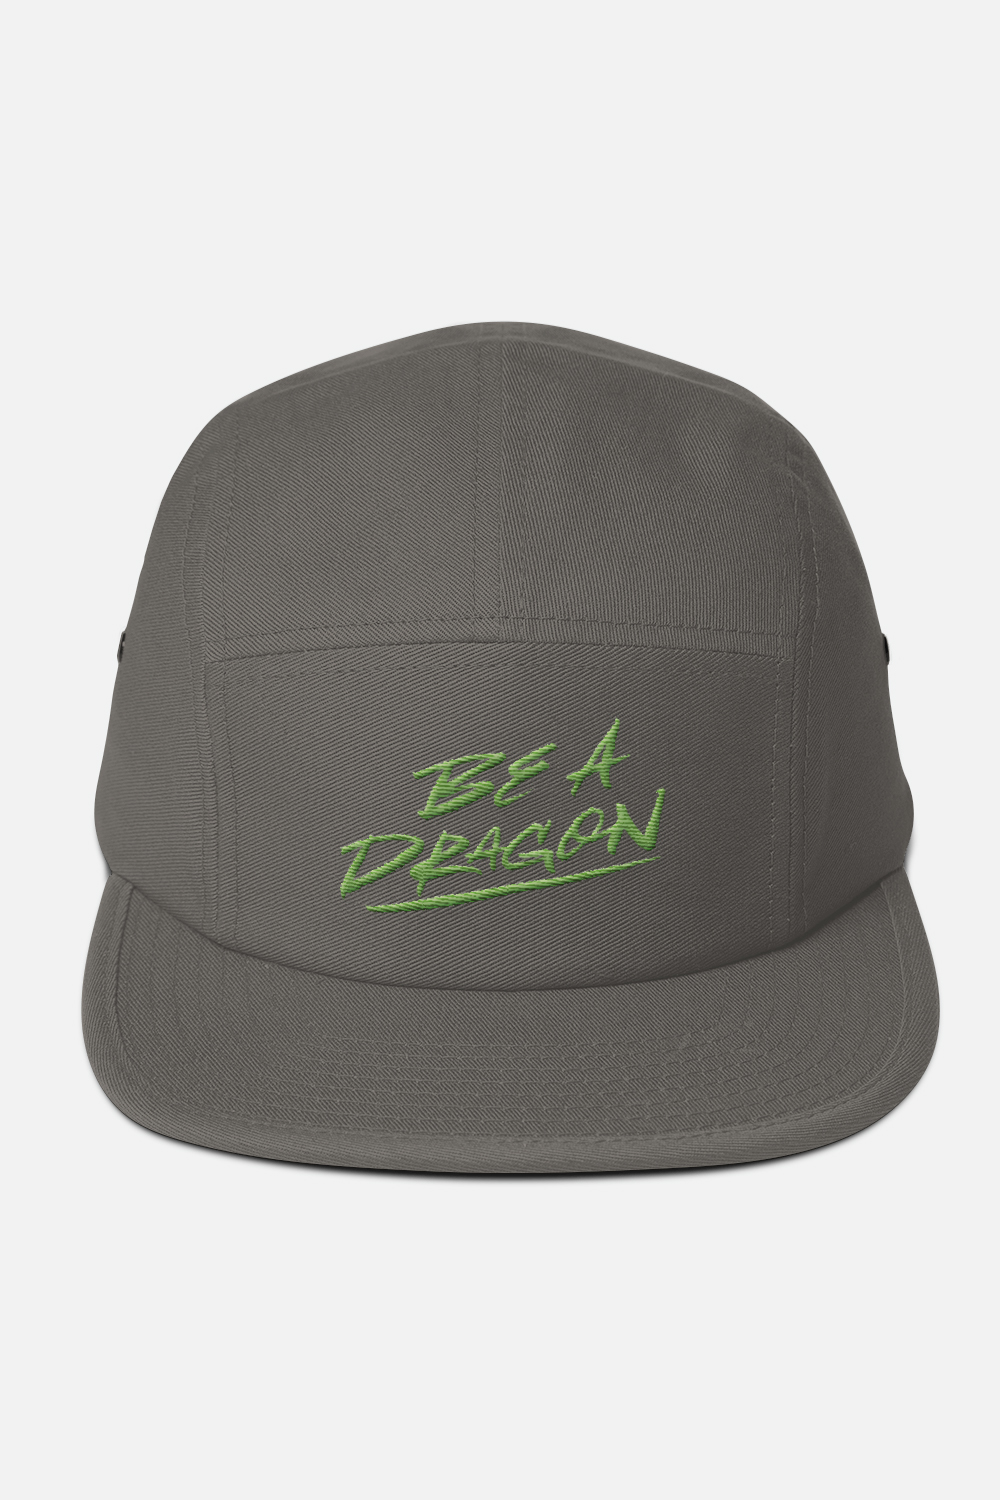 Be A Dragon 5 Panel Hat